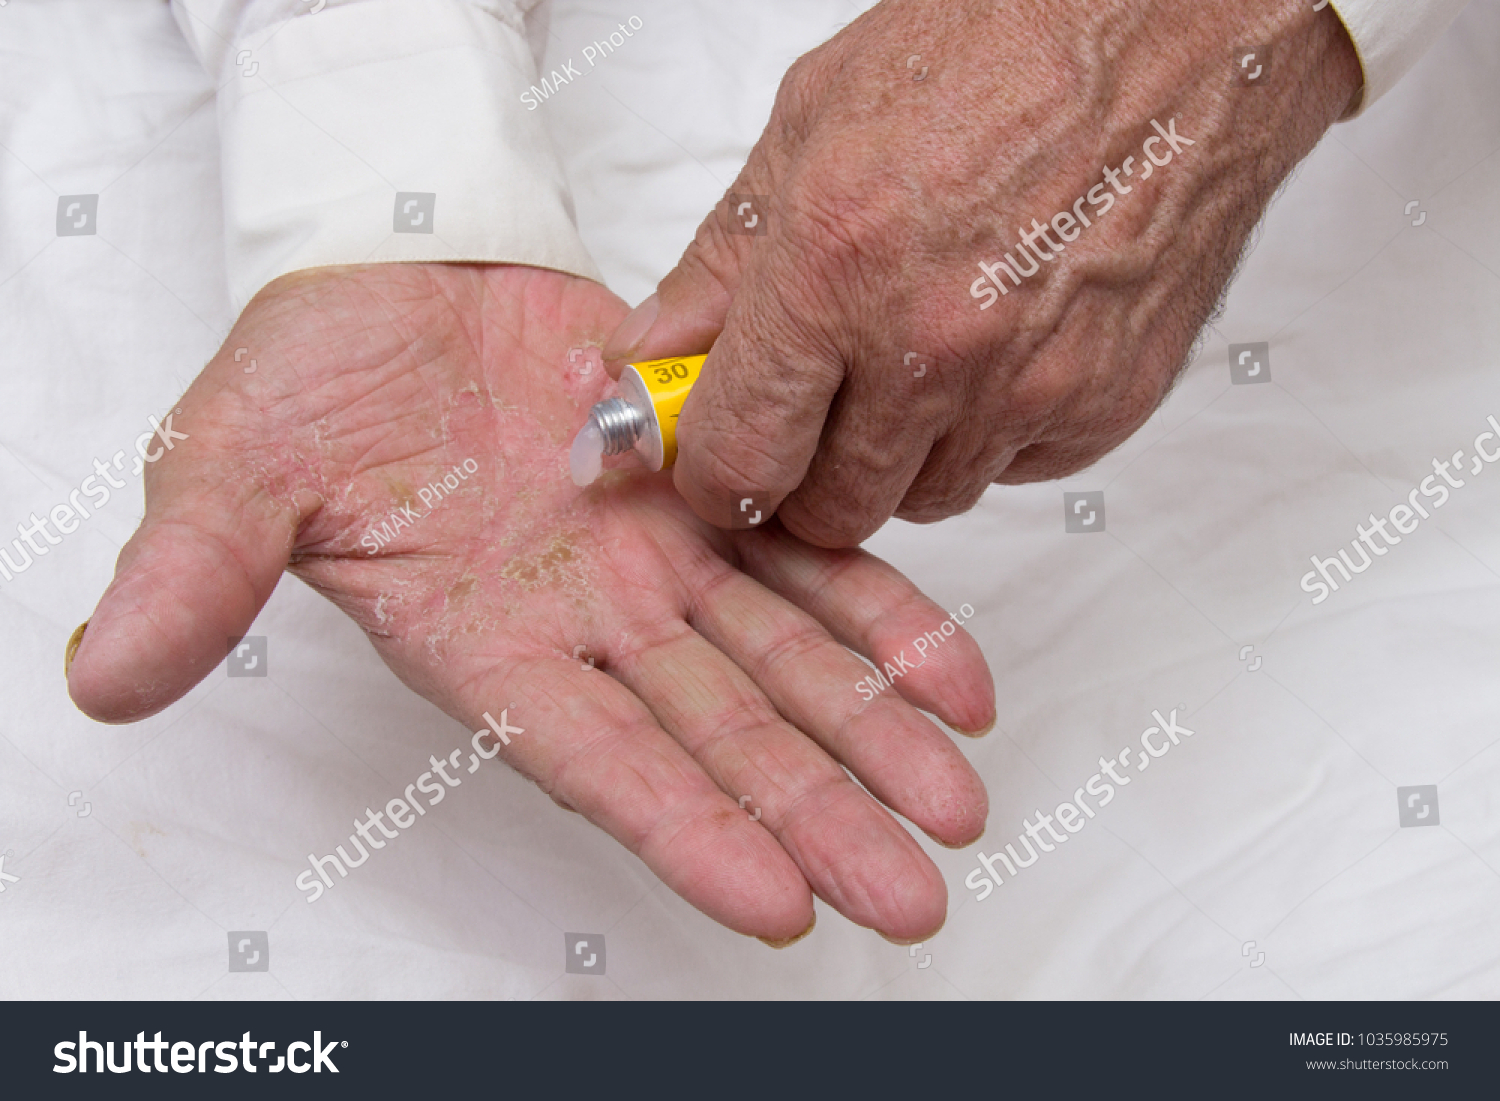 Ointment On Hands Elderly Person Applying Stock Photo (Royalty Free ...